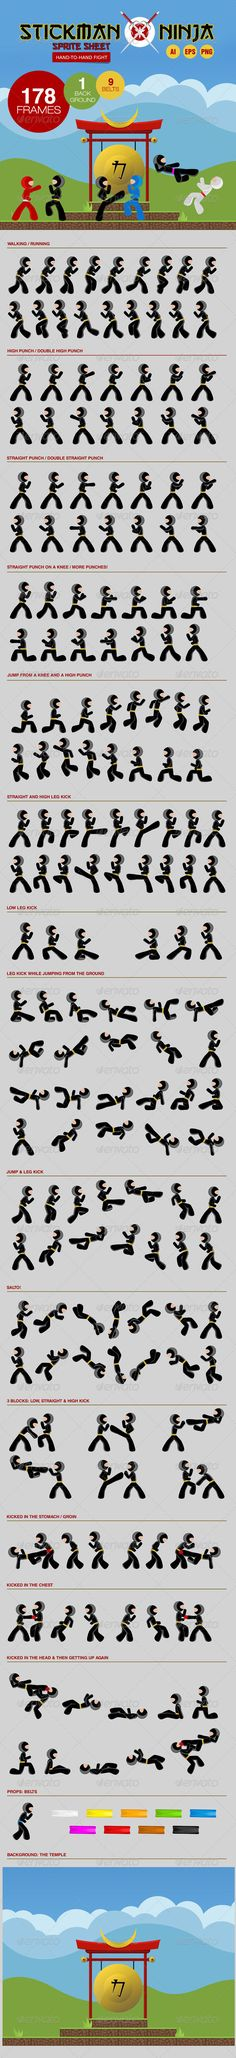 Stickman Ninja Sprite Sheet  HandToHand Fight — Vector EPS #assets #running • Available here → https://graphicriver.net/item/stickman-ninja-sprite-sheet-handtohand-fight/8257380?ref=pxcr